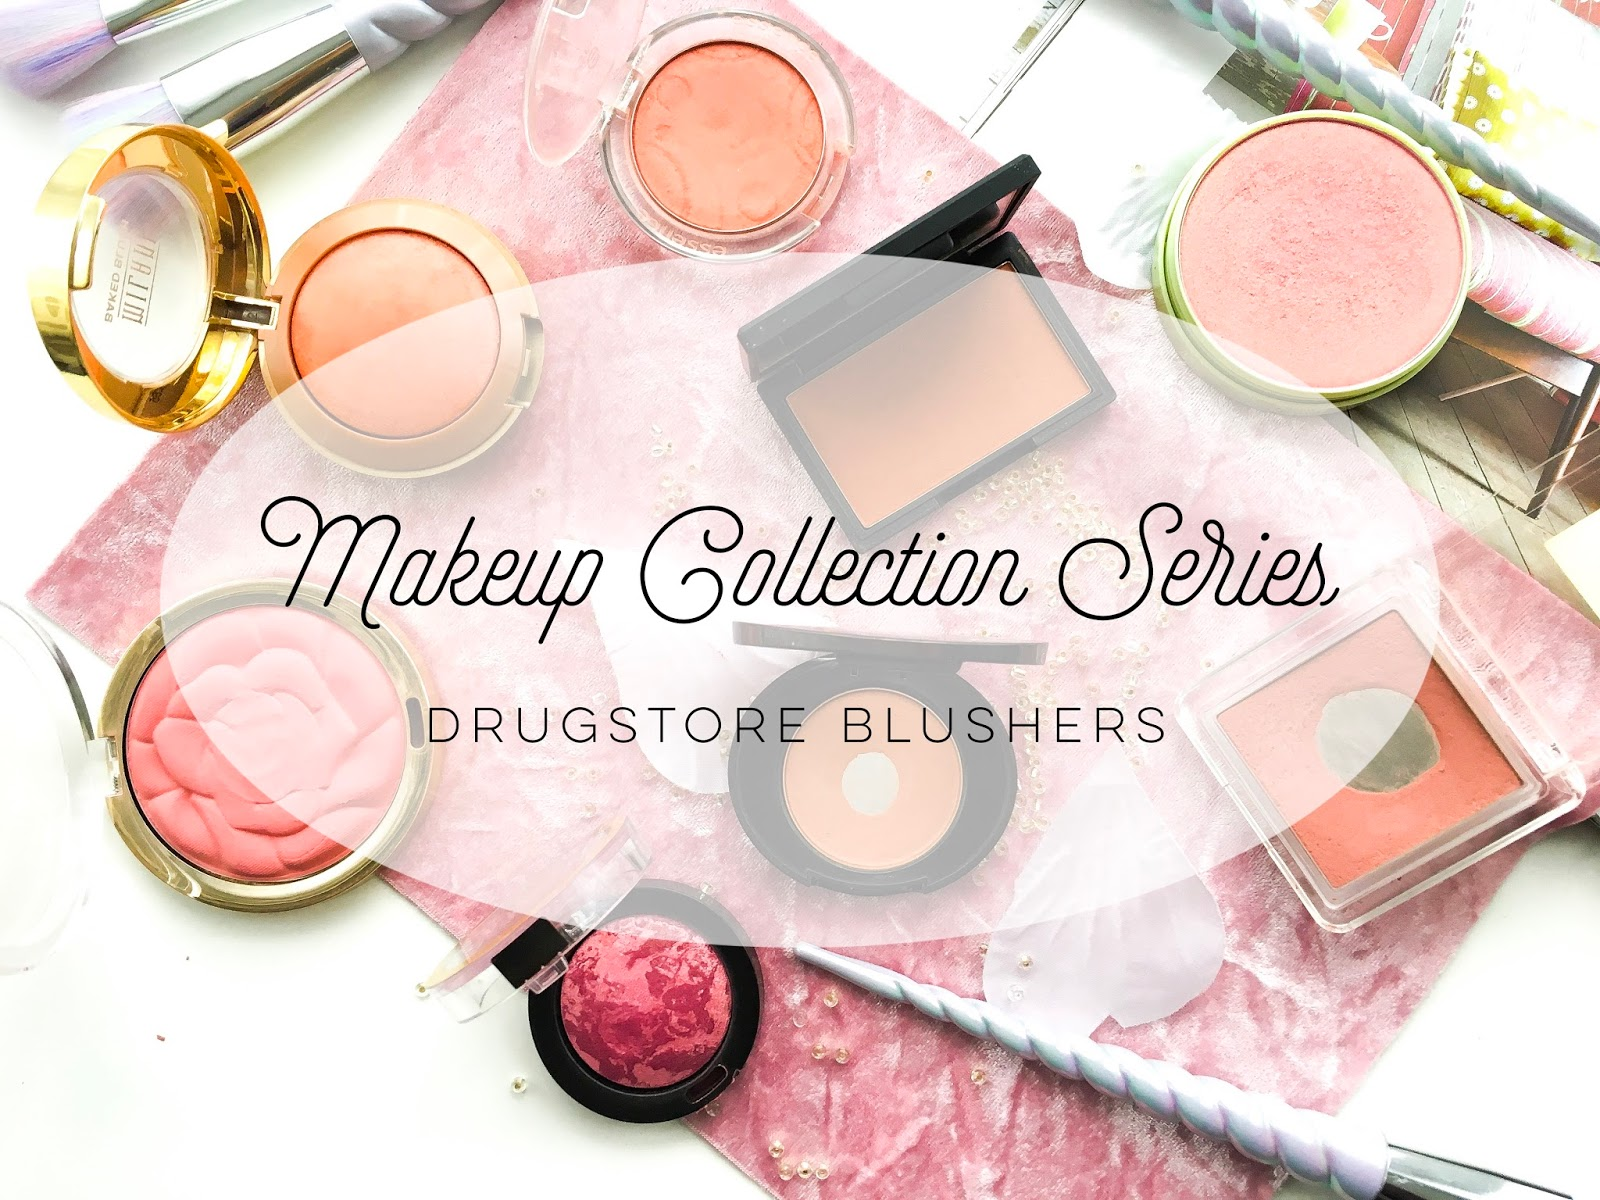 Best highstreet drugstore blushers, top affordable blushers uk